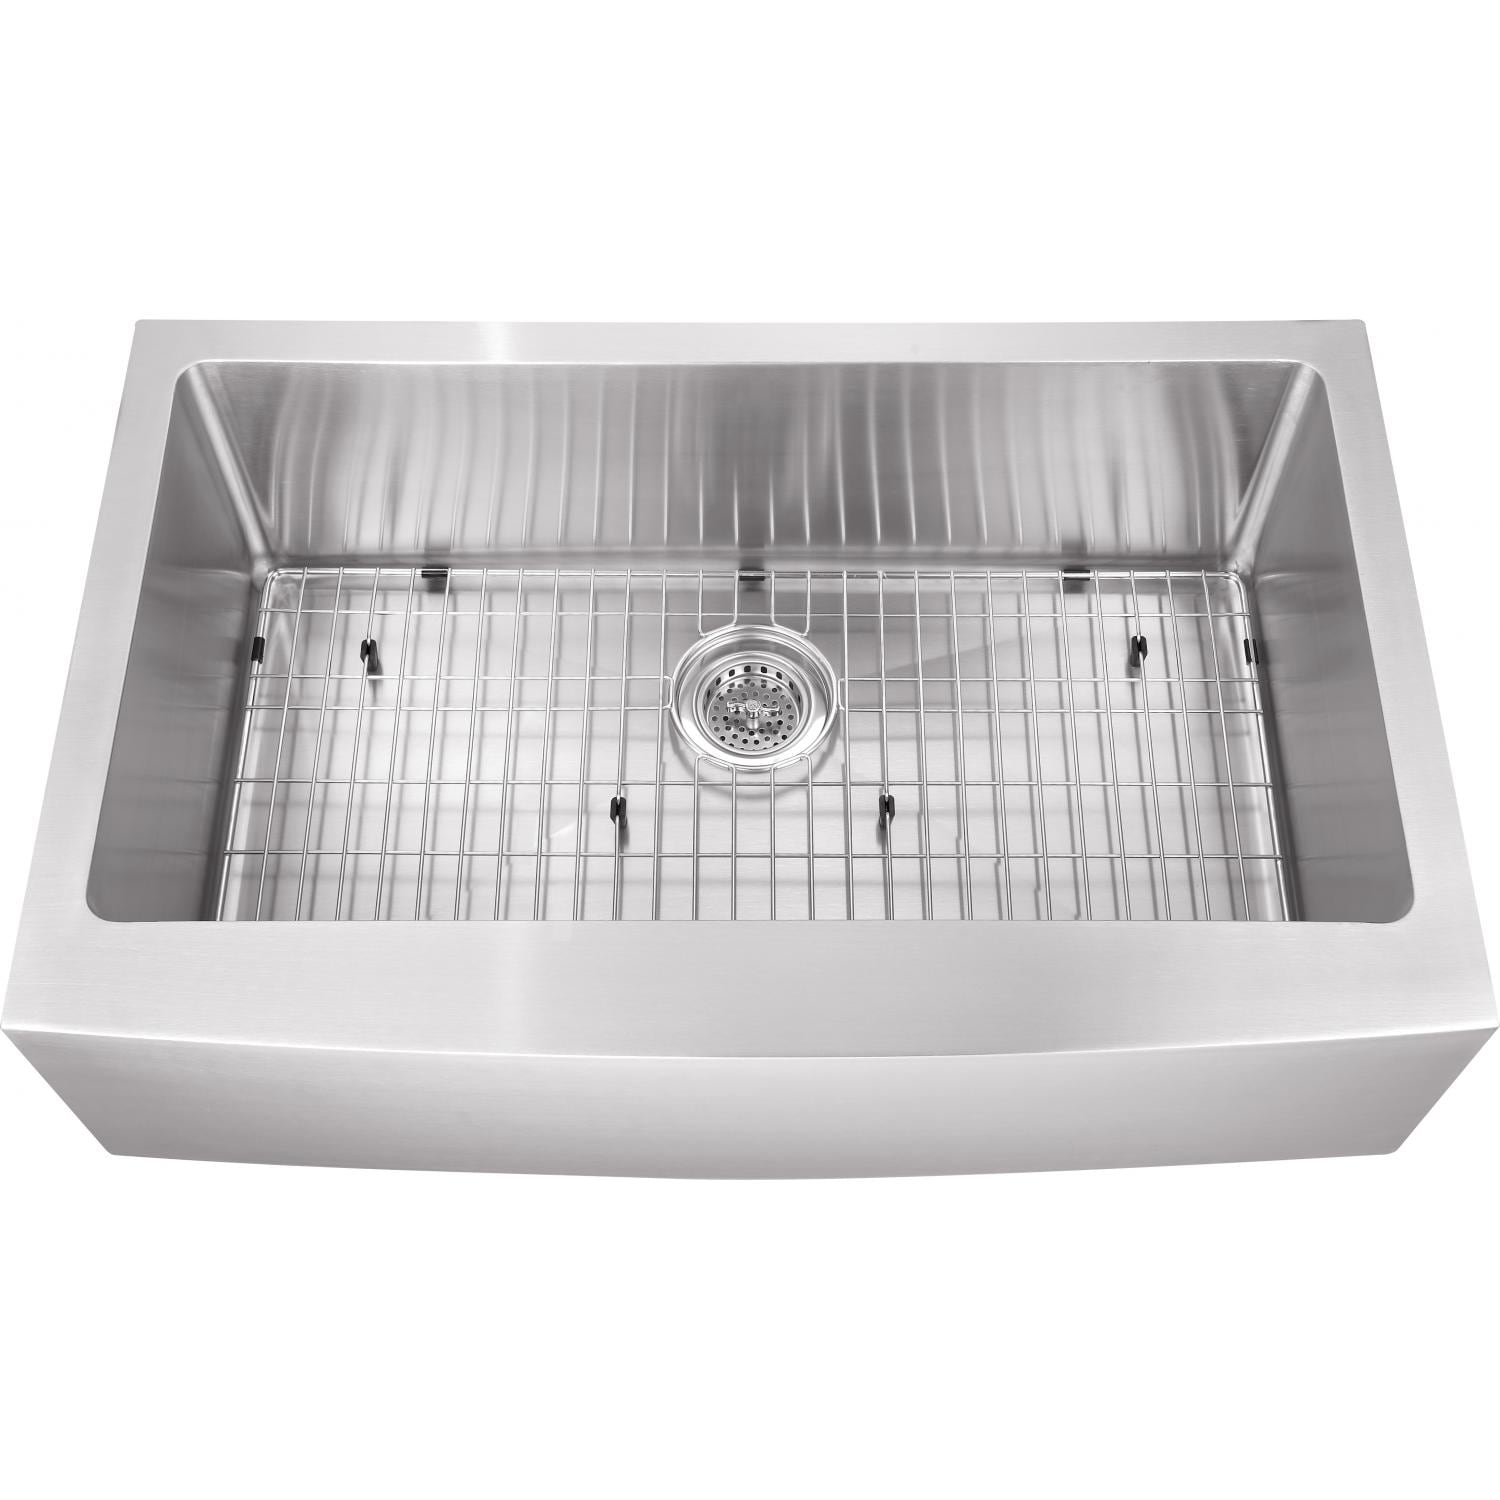 Platinum Sinks 32 X 20 16-Gauge Single Bowl Stainless Steel Apron Undermount Sink With Strainer And Grid